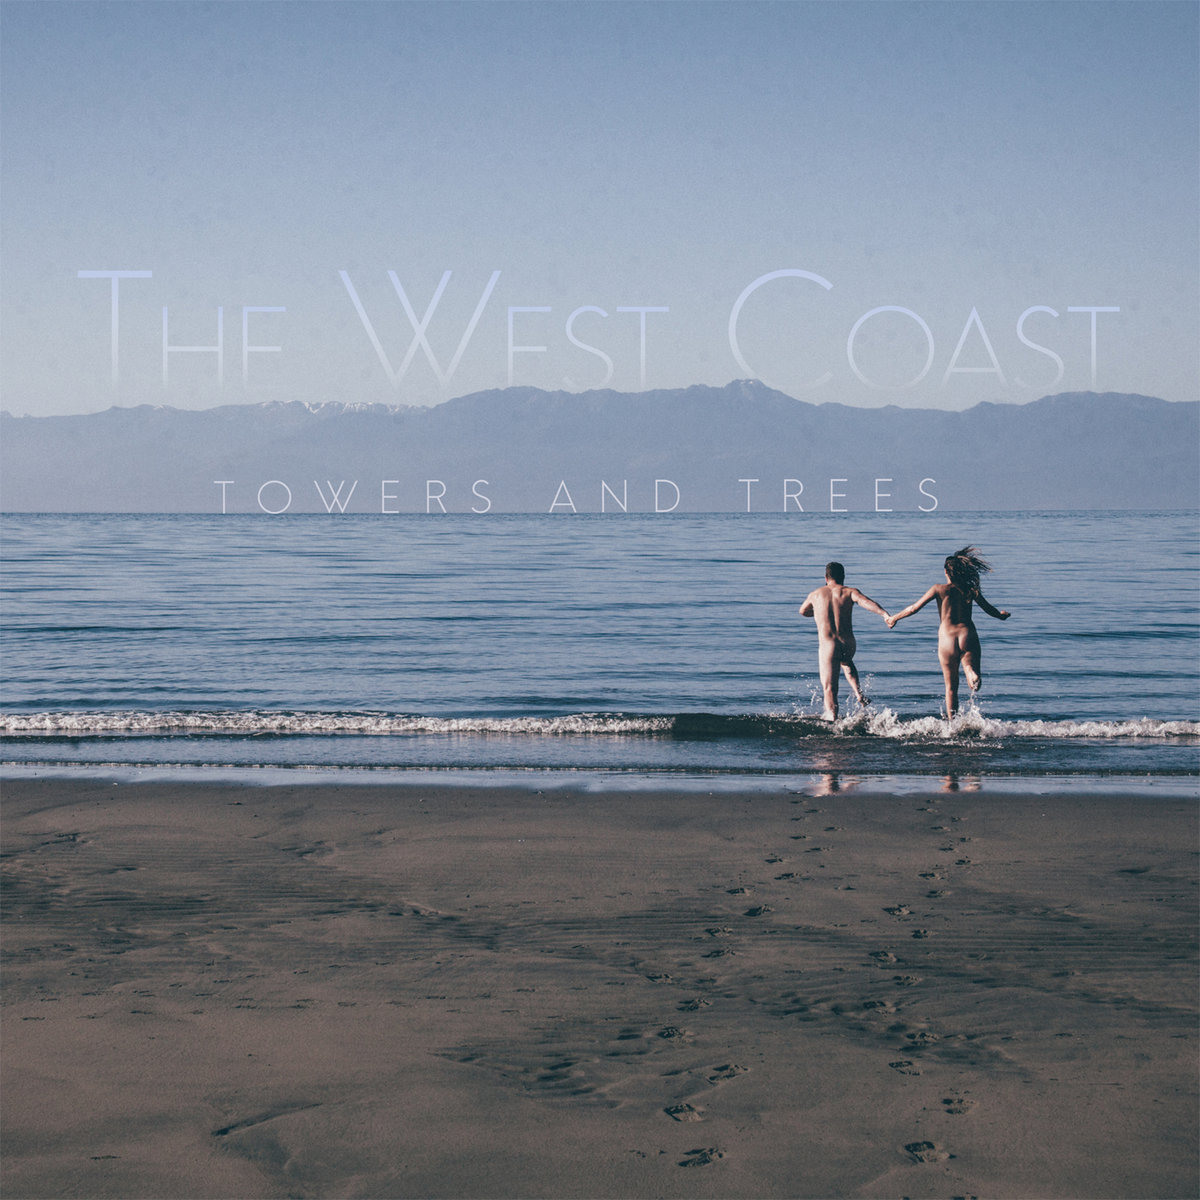 "<p><strong>Towers and Trees</strong>The West Coast<a href=""https://itunes.apple.com/ca/album/the-west-coast/id1038944005"">Listen →</a></p>"